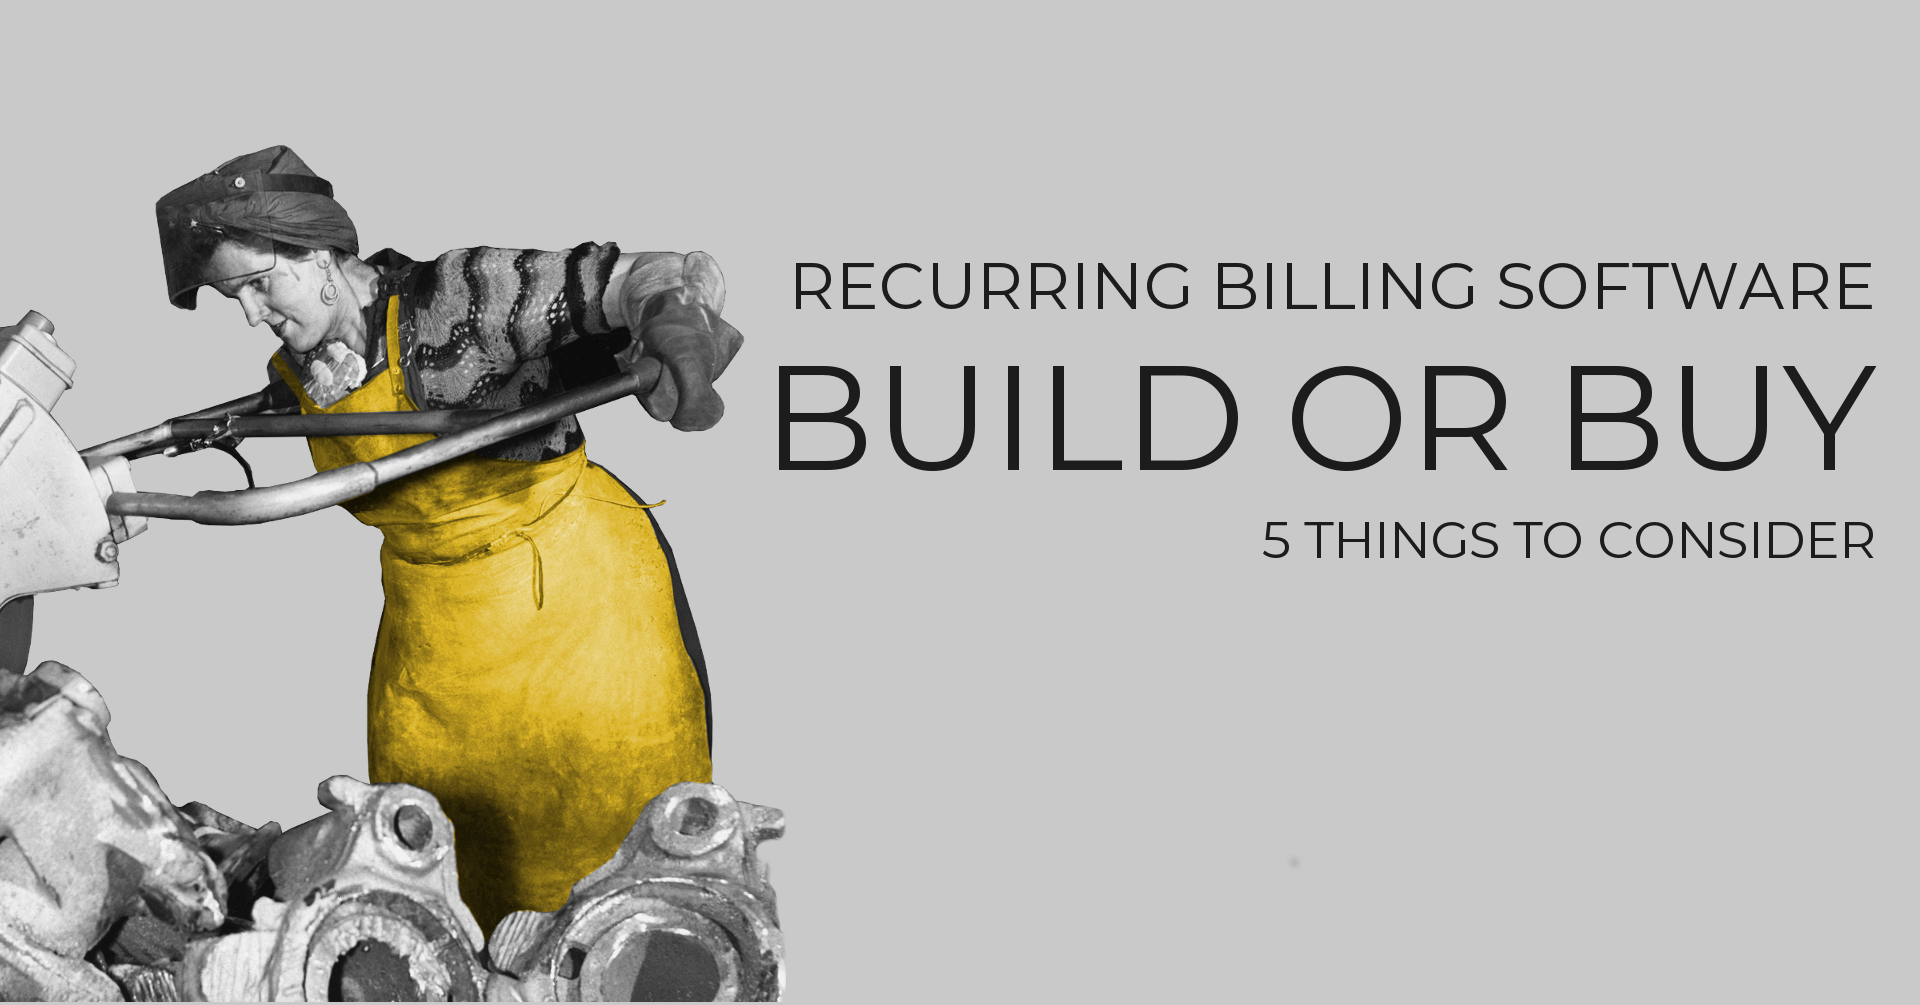 Build Or Buy Your Recurring Billing Software:  5 Things To Consider